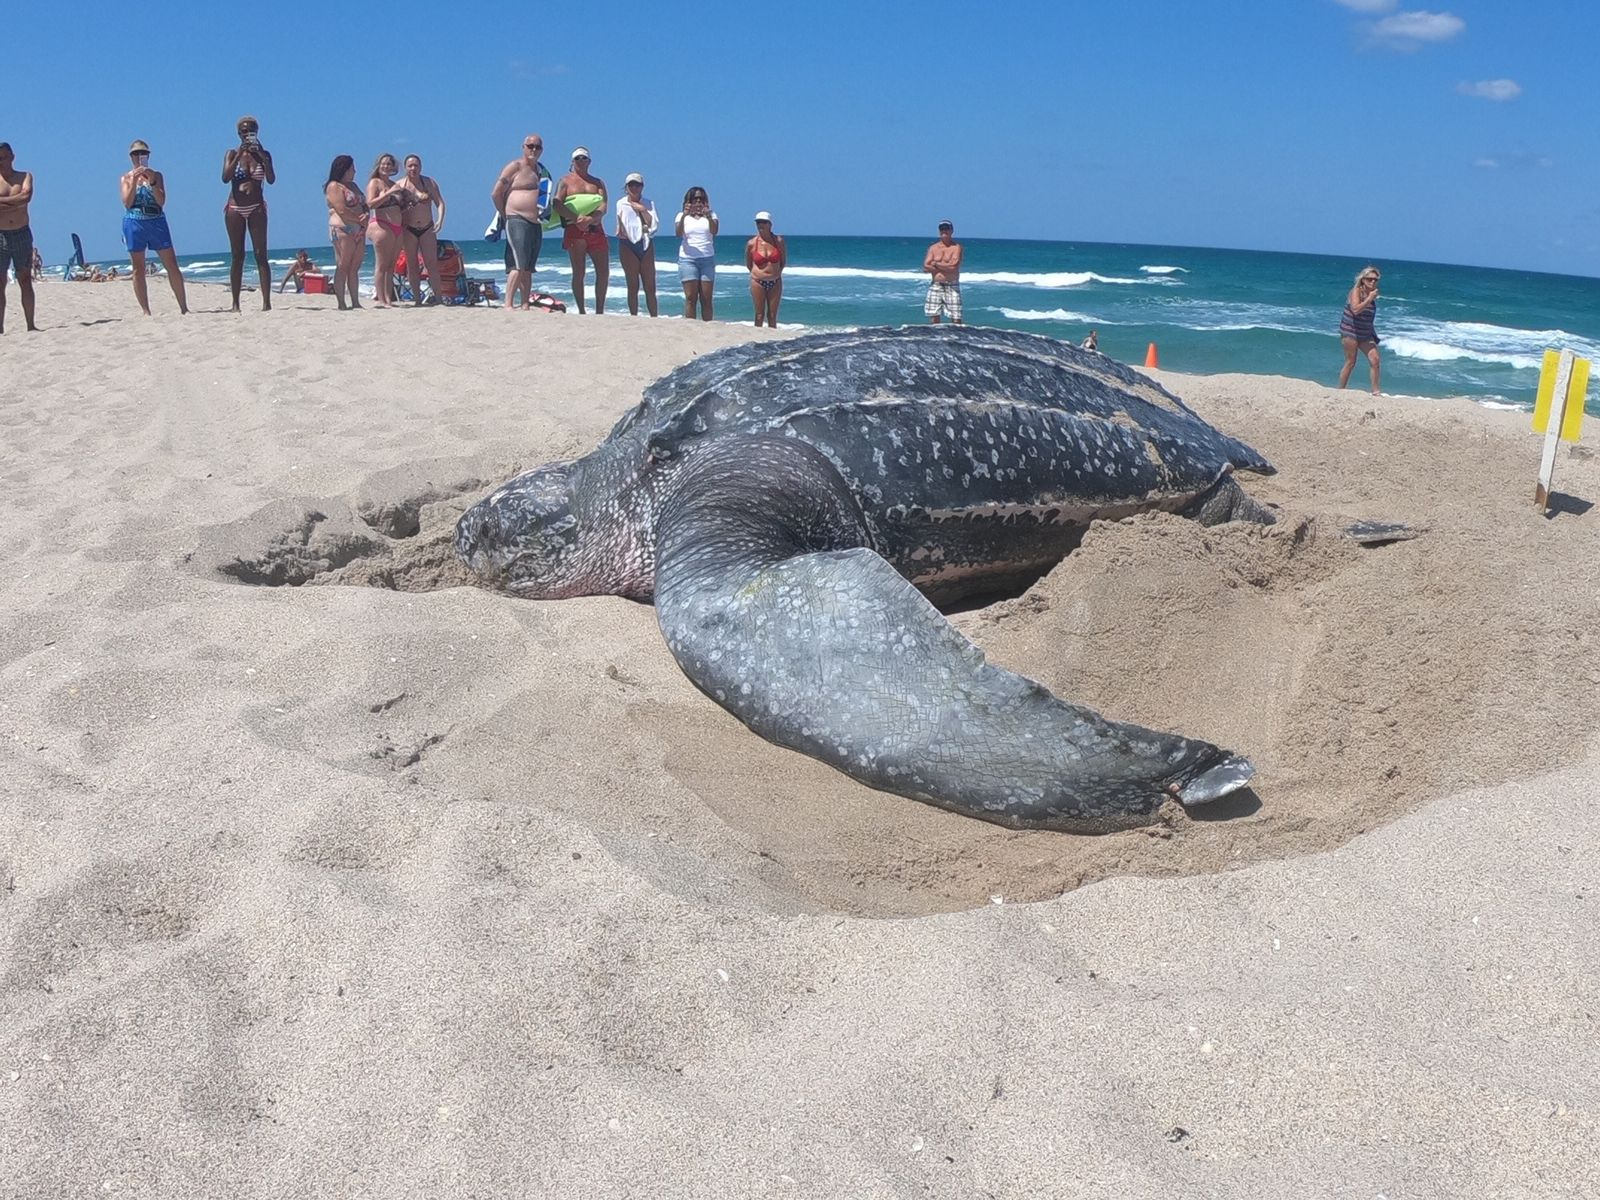 Leatherback turtles are the biggest of all the sea turtle species currently living in the world today, according to the experts at the MarineLife Center. (Loggerhead MarineLife Center)